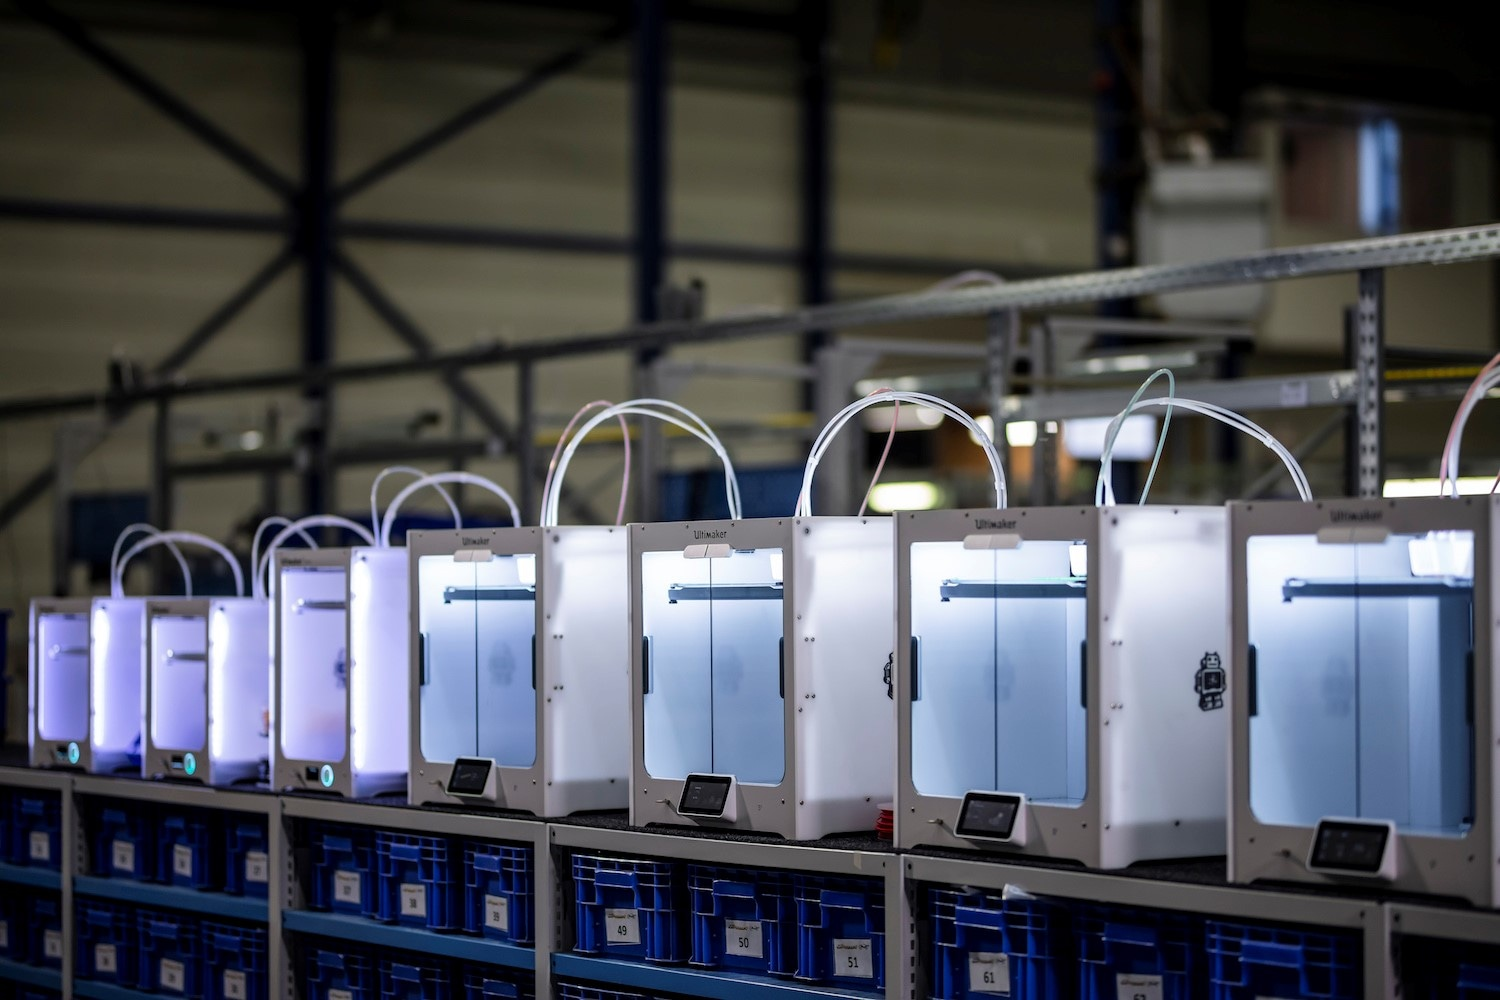 Ultimaker introduces new platform services with Ultimaker Cloud